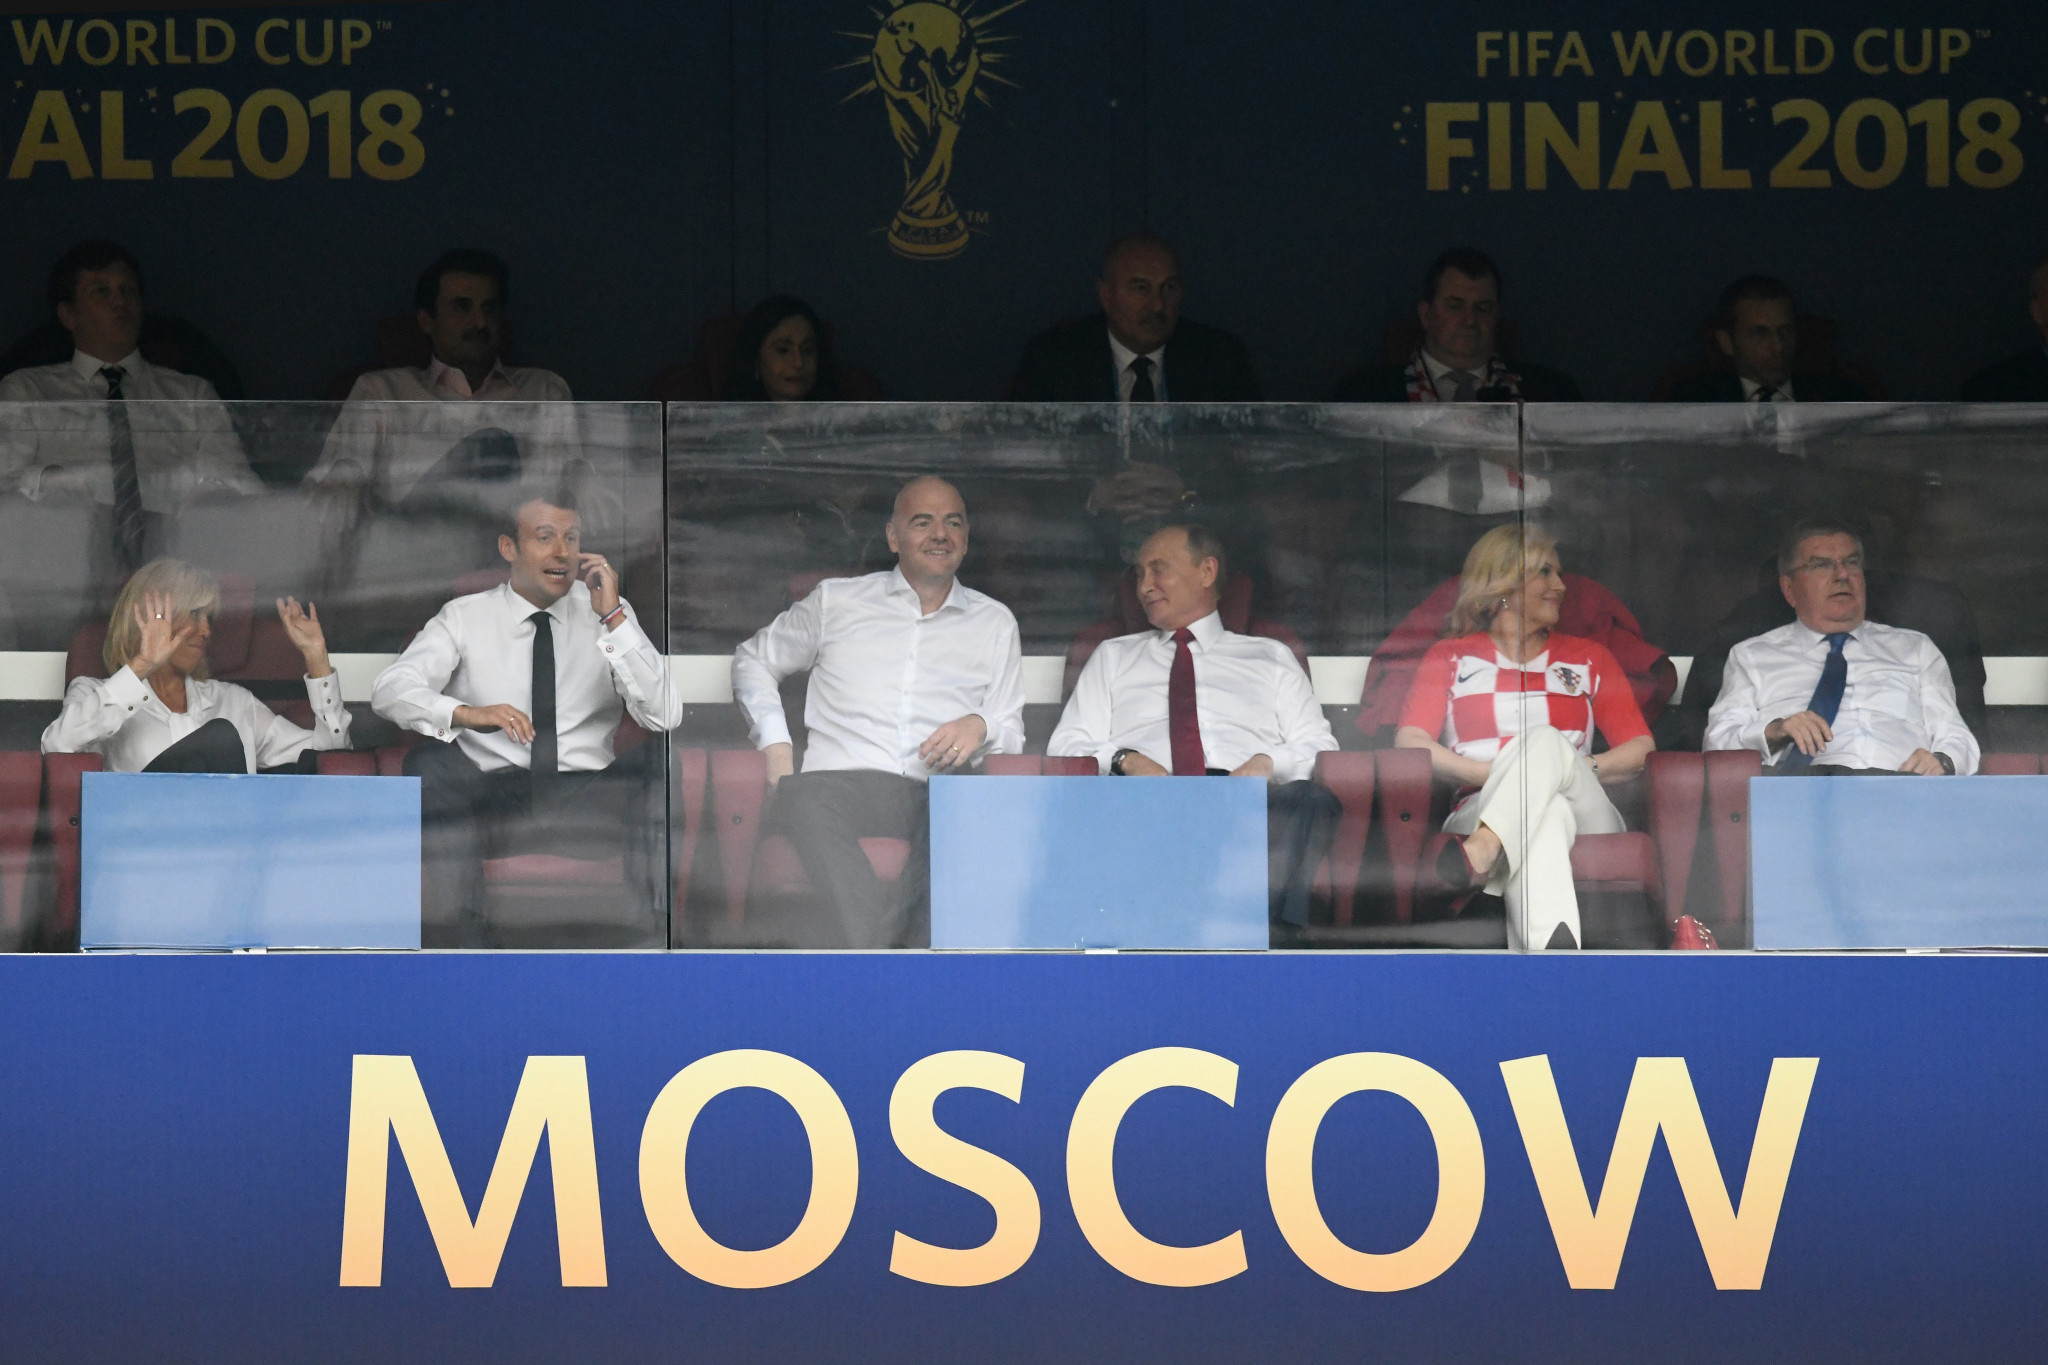 World Cup 2018 added $14 billion to Russian economy, organisers report